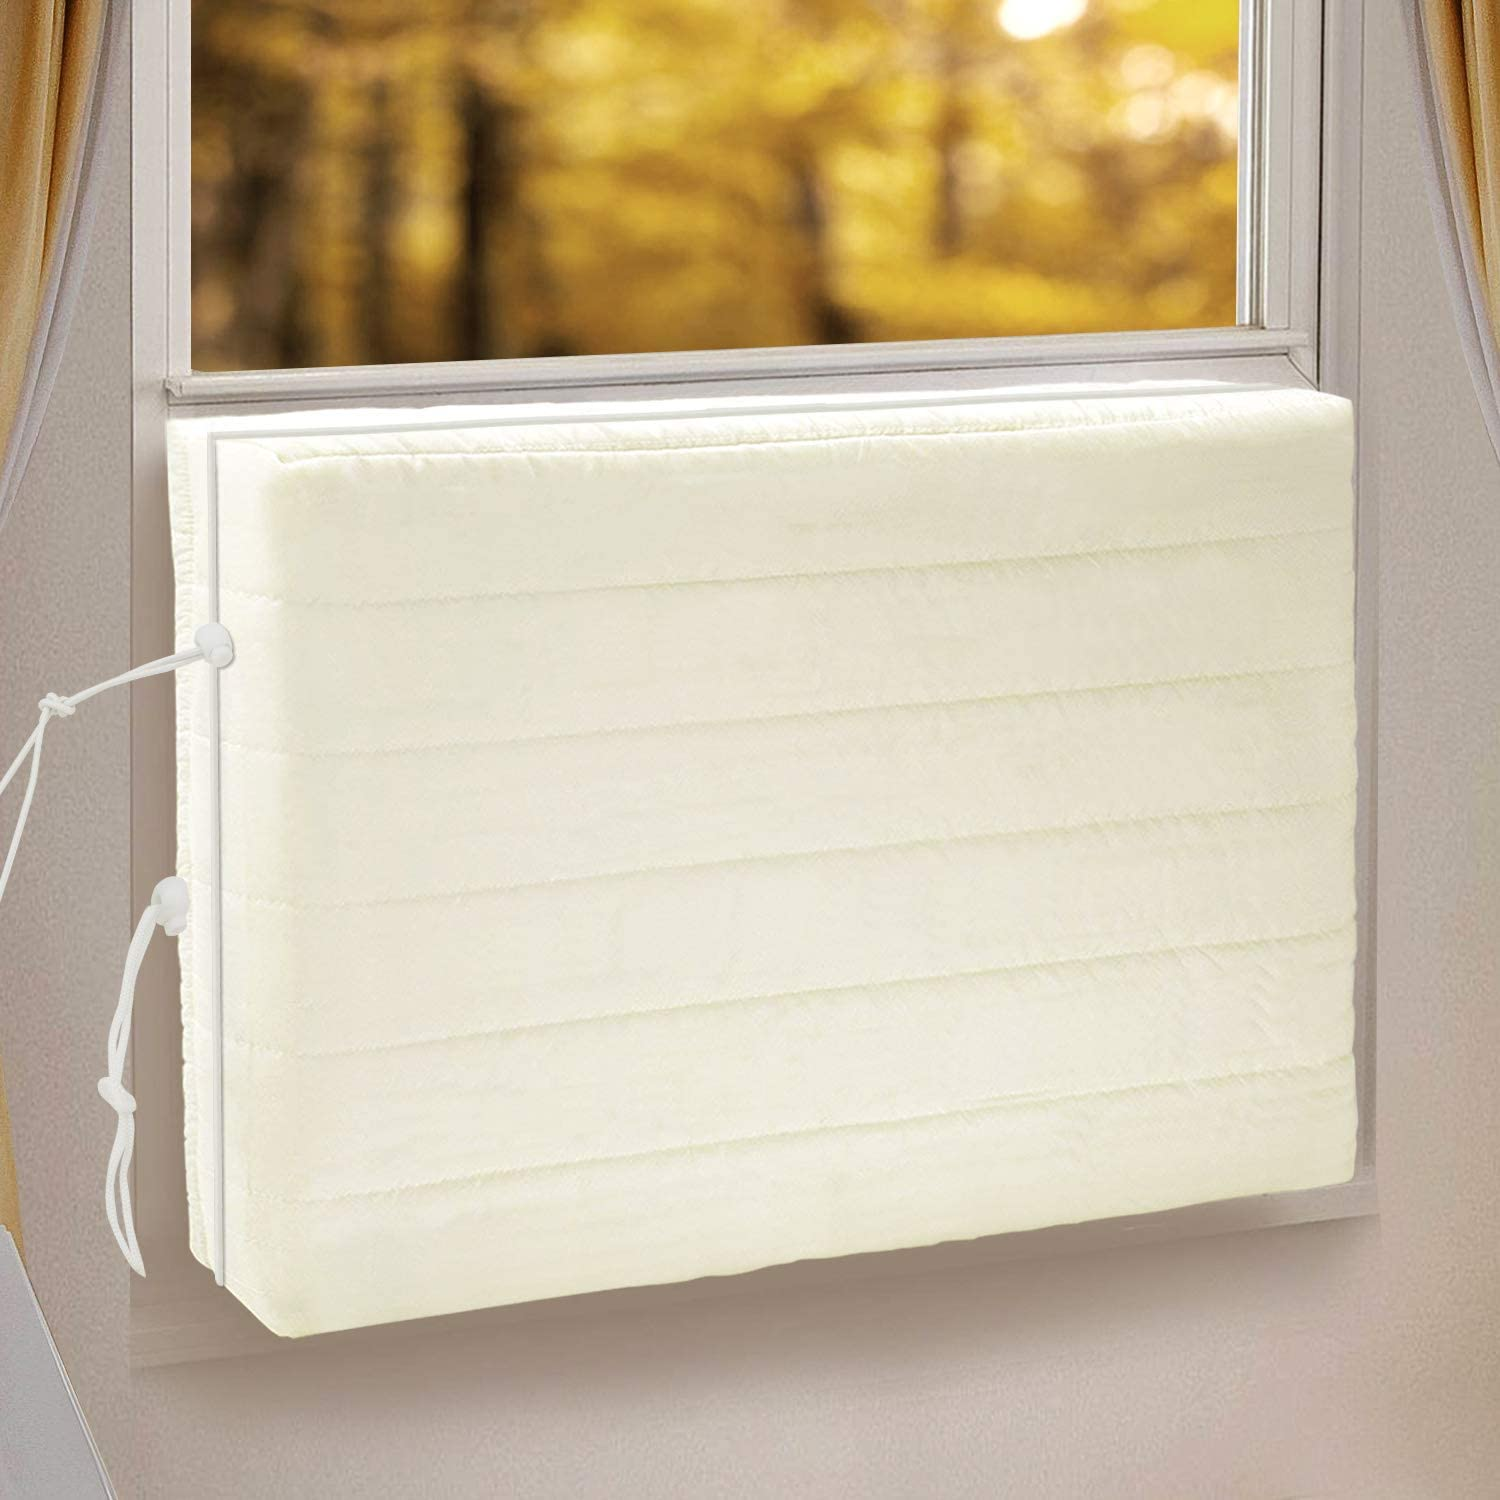 GISSVOGEEK Indoor Air Conditioner Cover for Window Units, Window AC Unit Cover for Inside, Double Insulation with Drawstring, XS Beige 17 x 13 x 3 inches (L x H x D)